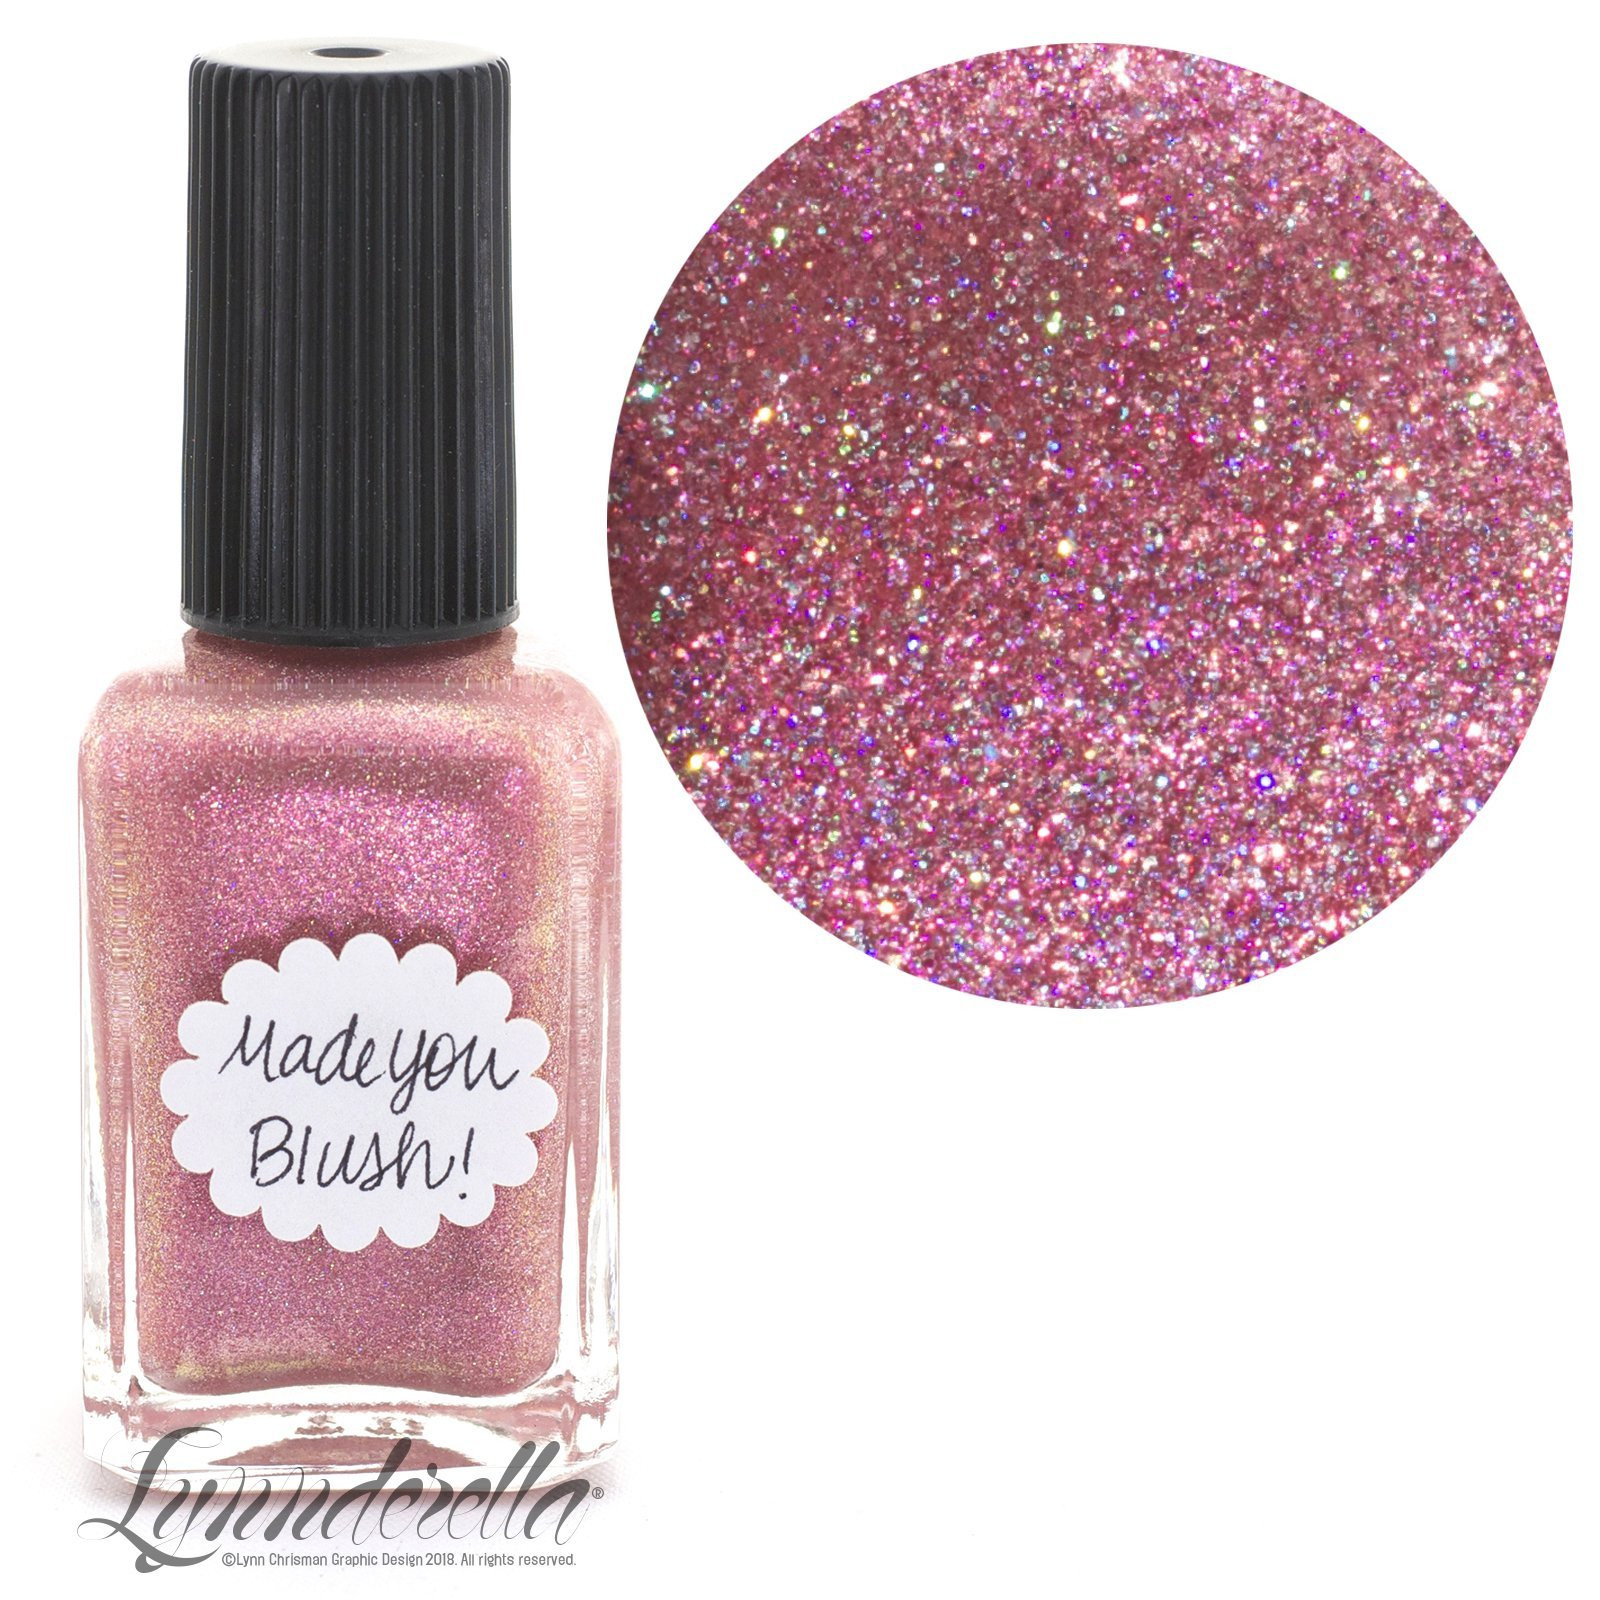 Lynnderella Limited Edition—Coral Peach Shimmerella Nail Polish—Made You Blush!